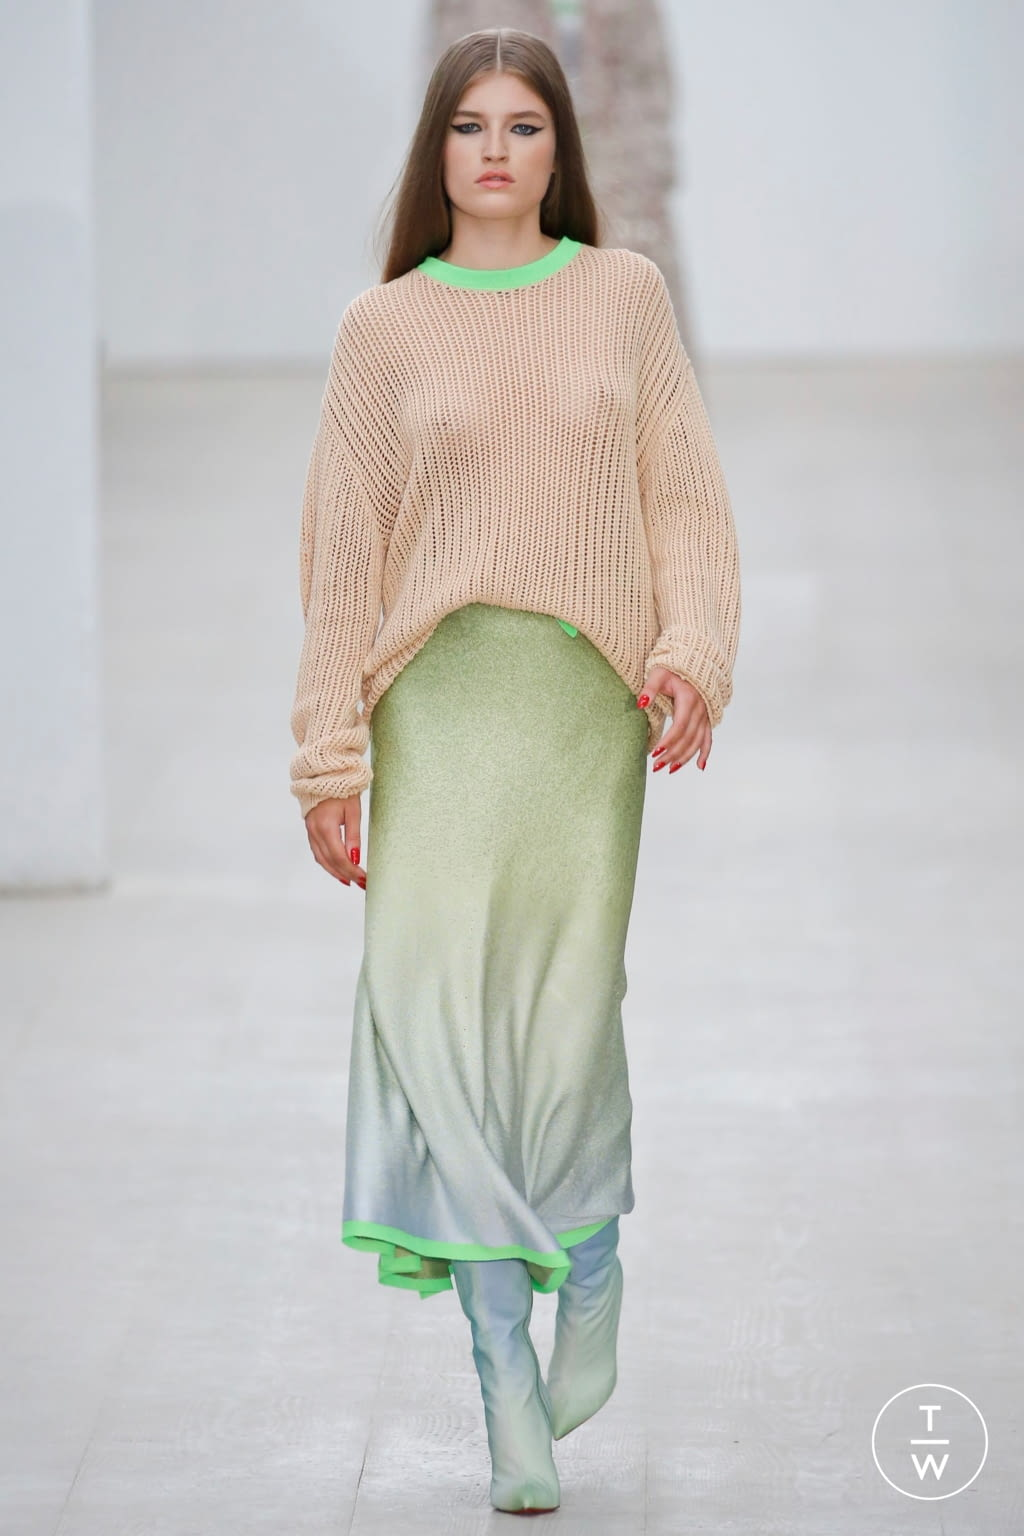 Fashion Week London Spring/Summer 2020 look 1 from the Roberta Einer collection 女装